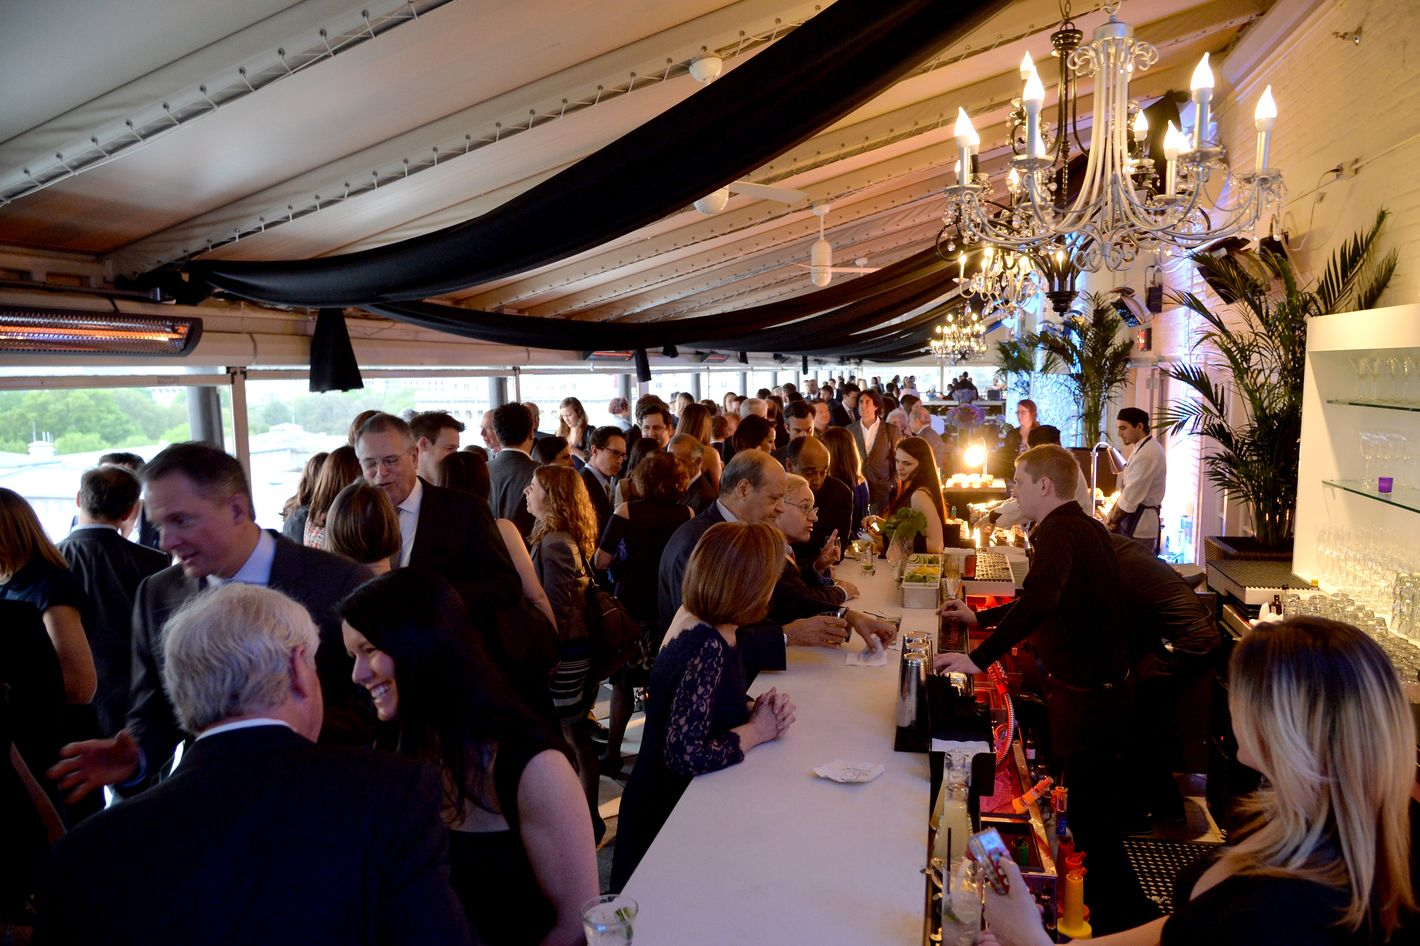 WASHINGTON, DC - MAY 02:  A general view of atmosphere at the White House Correspondents' Dinner Weekend Pre-Party hosted by The New Yorker's David Remnick at the W Hotel Washington DC on May 2, 2014 in Washington, DC.  (Photo by Andrew H. Walker/Getty Images for The New Yorker)